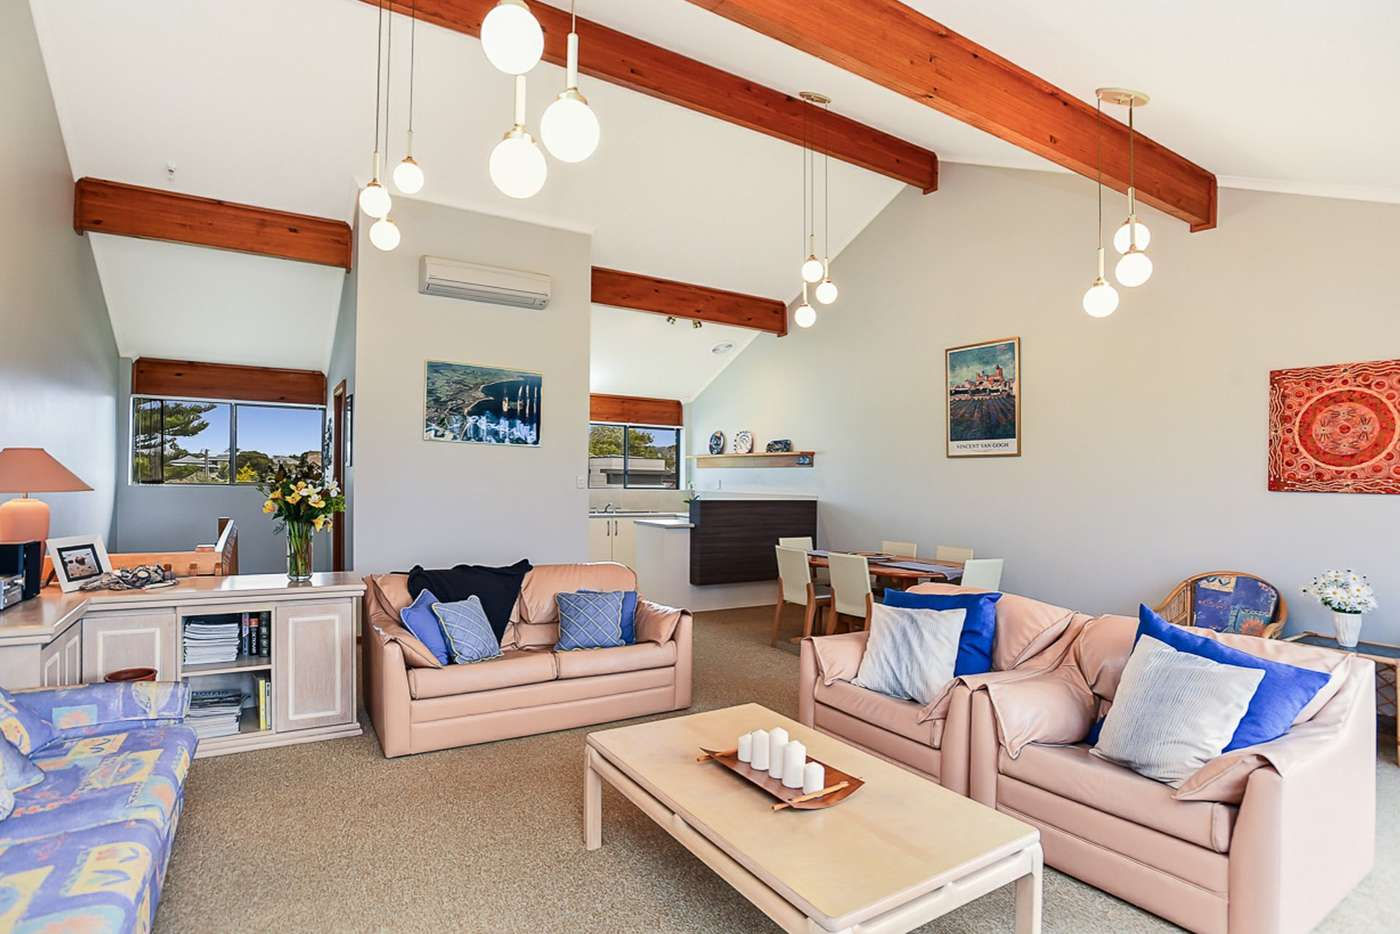 Fifth view of Homely unit listing, 2/3 Harborview Tce, Encounter Bay SA 5211